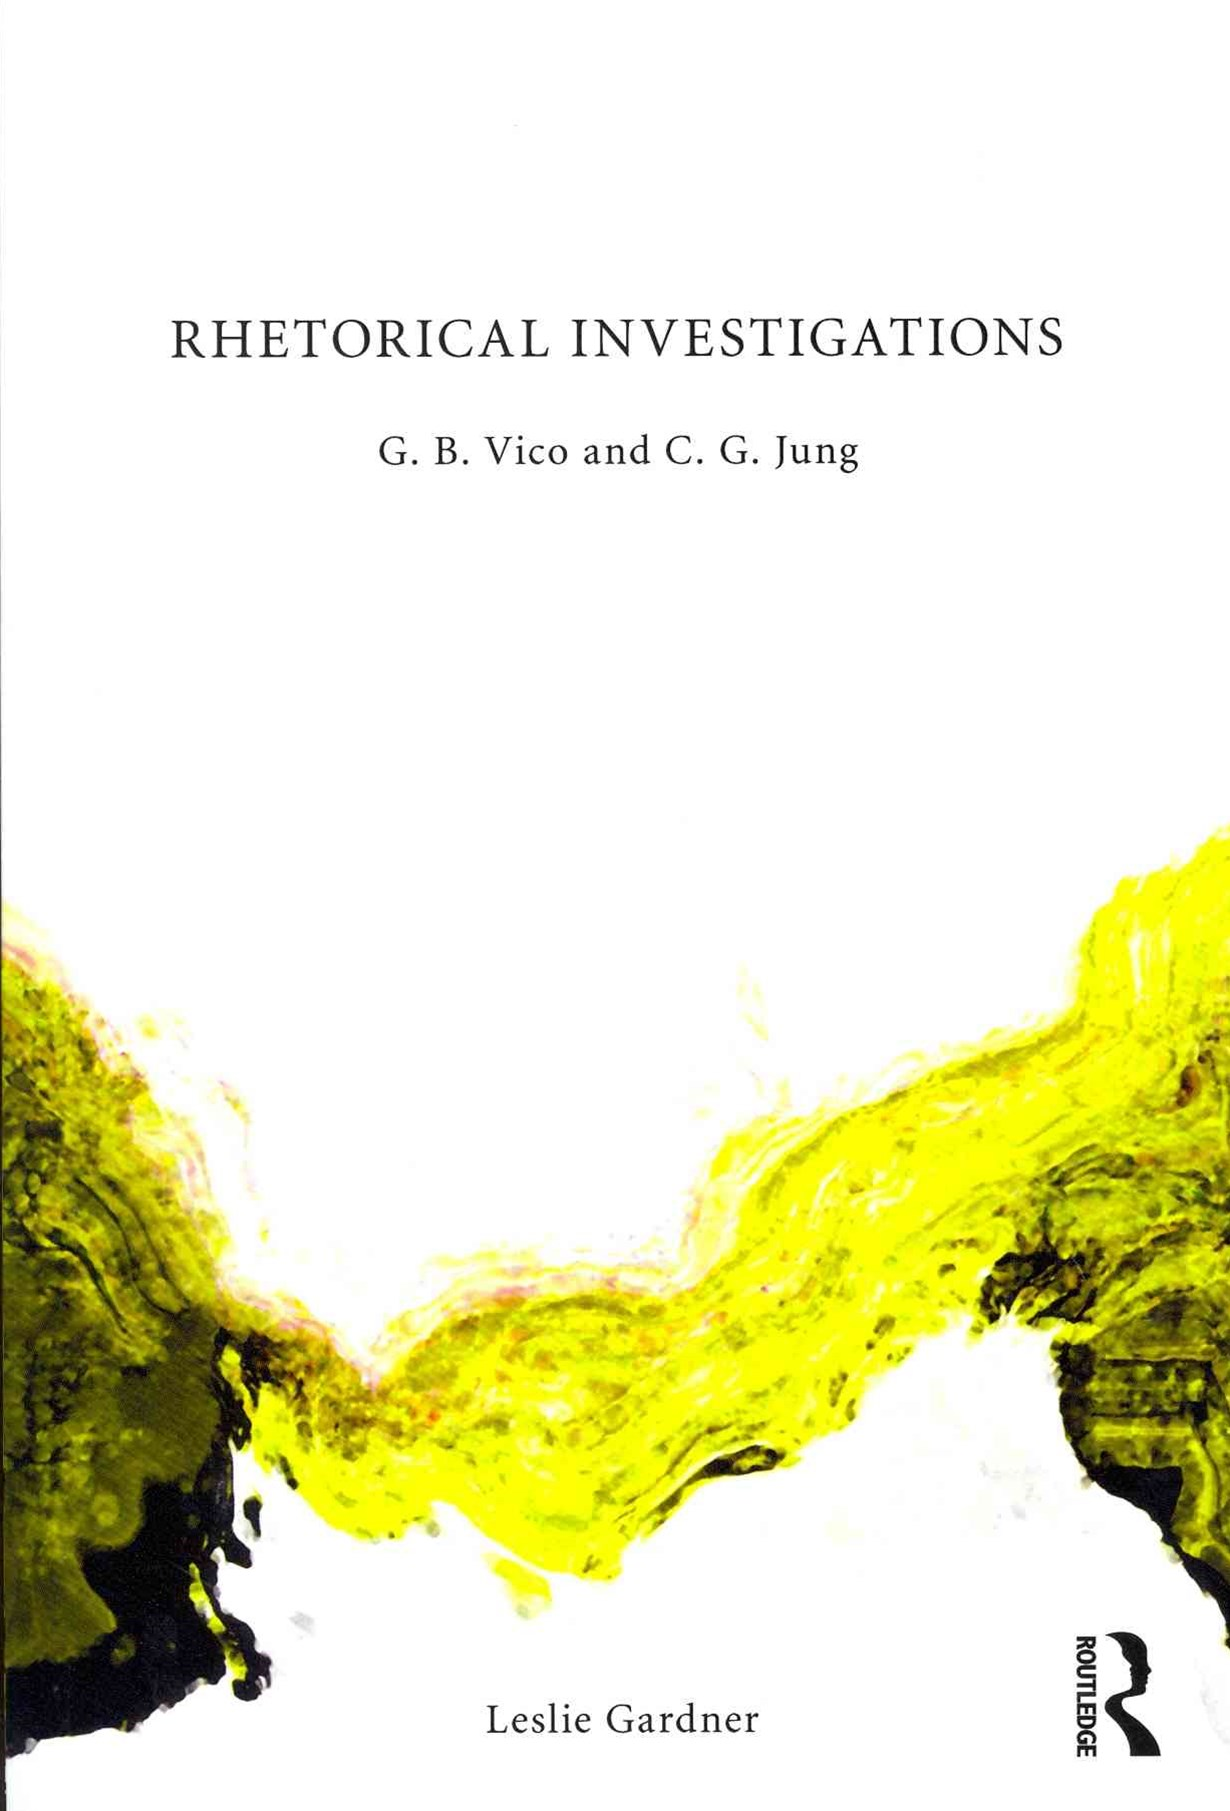 Rhetorical Investigations